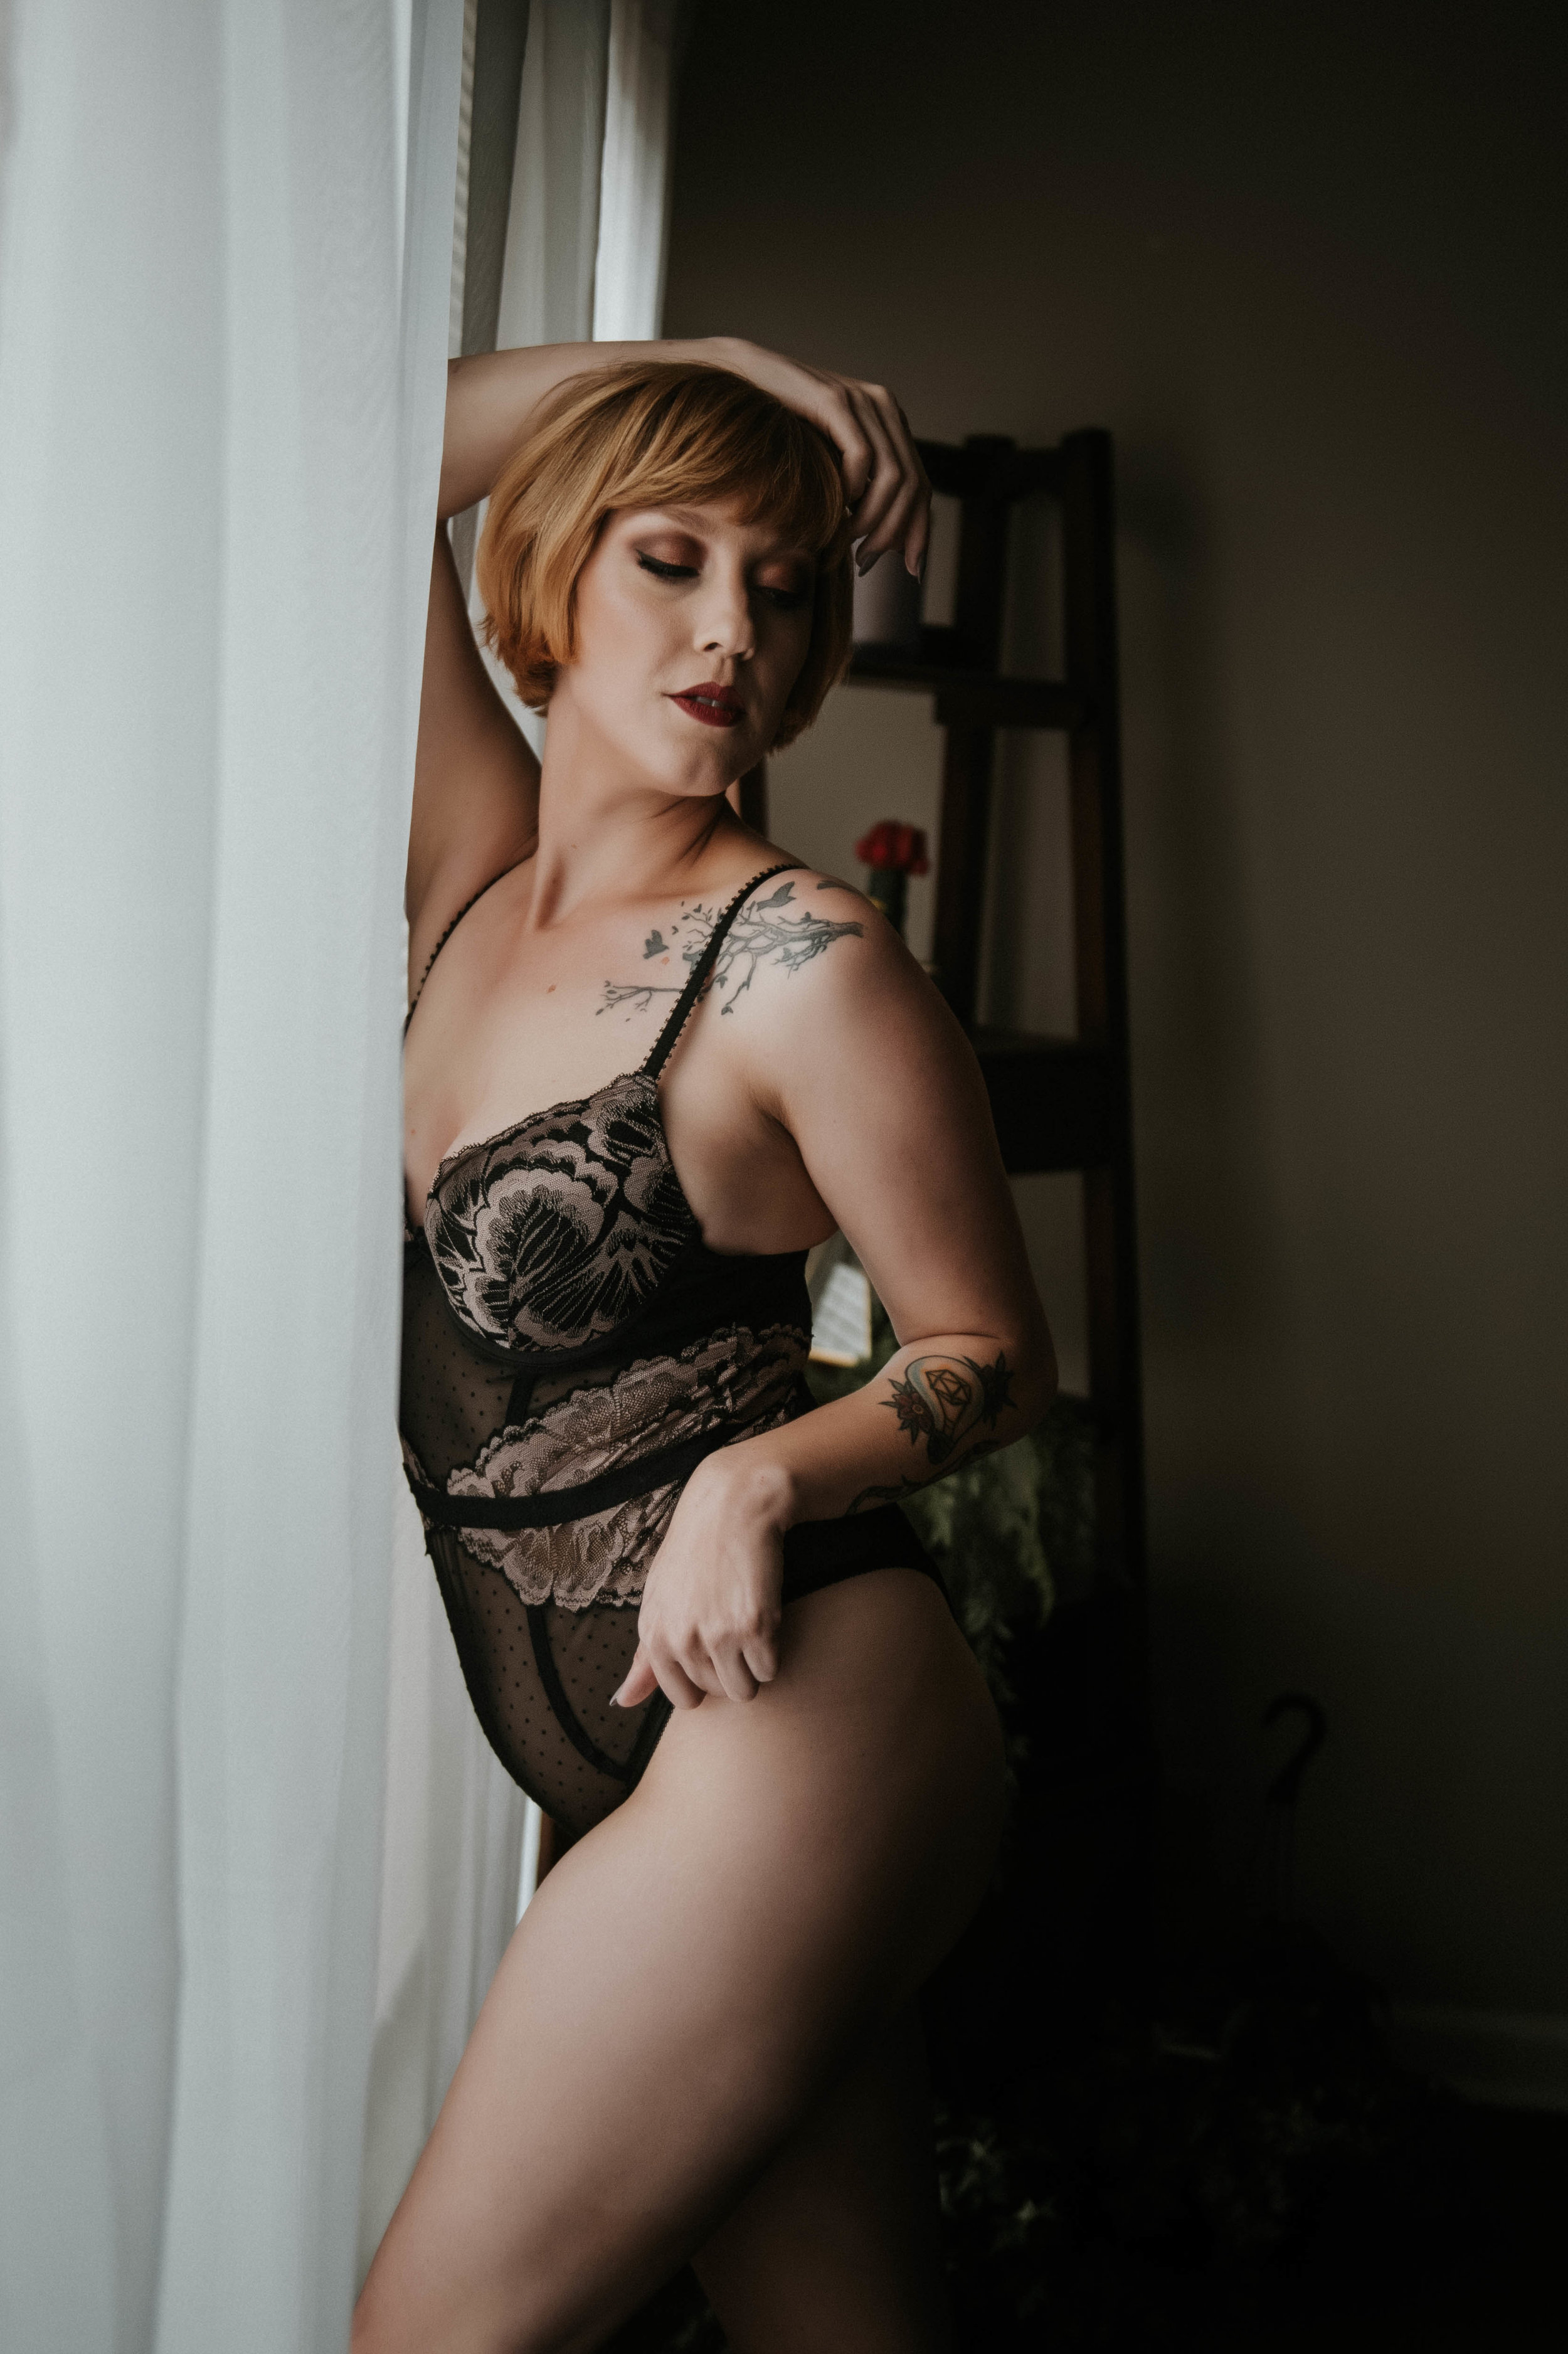 Short haired redhead in black lace bodysuit boudoir photography new york city studio